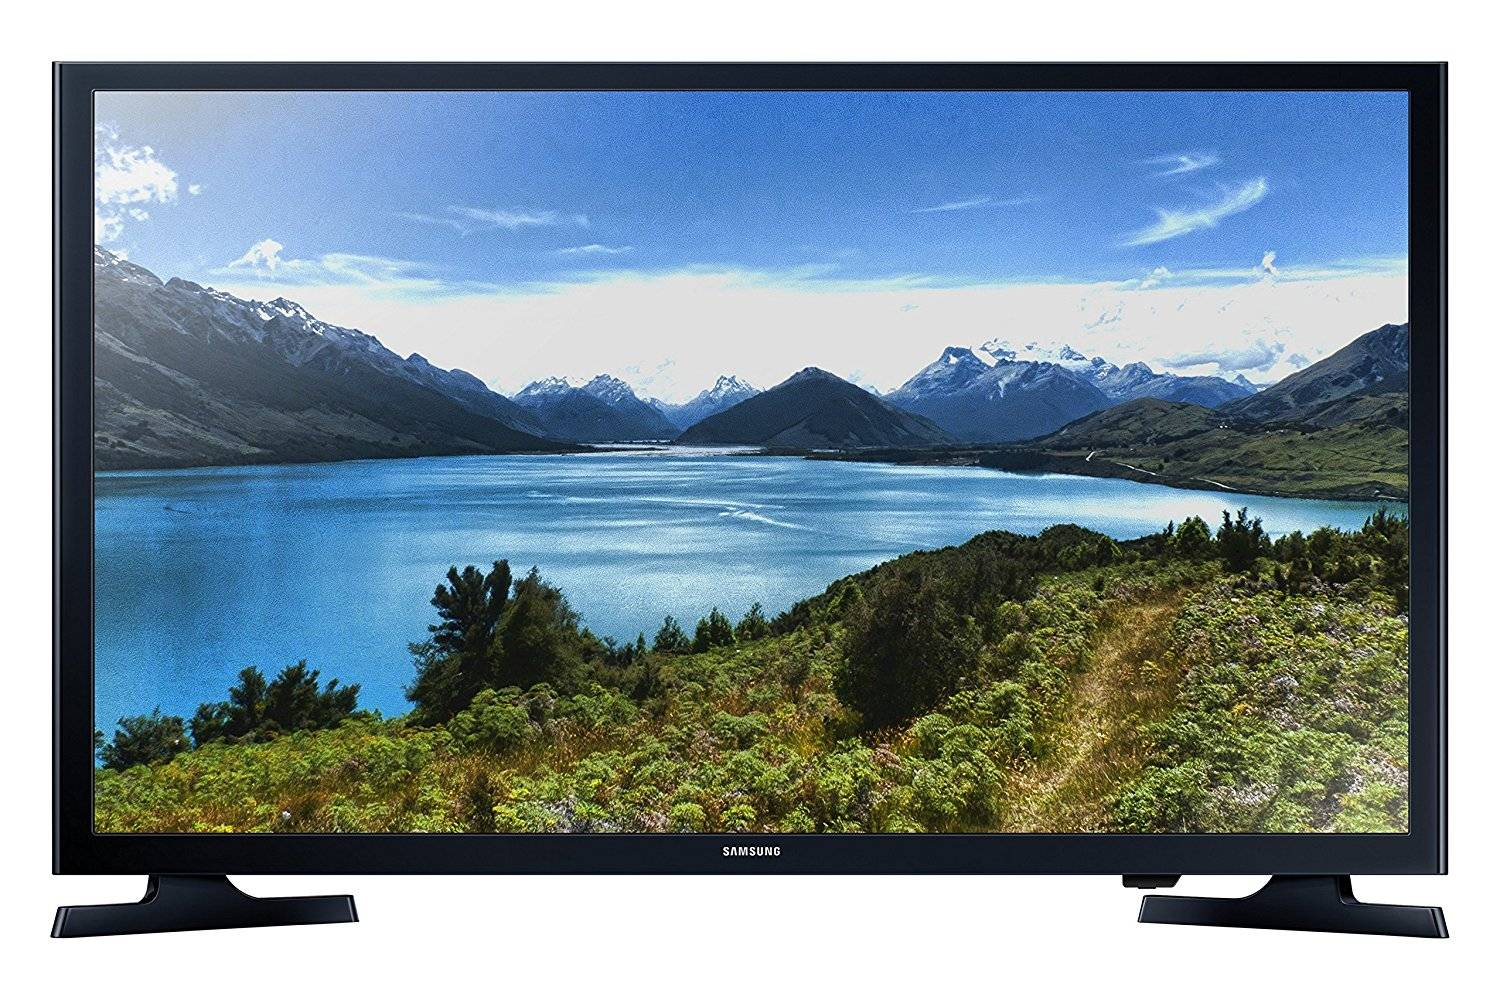 Summer Sale:Get Upto 35% OFF + additional offers on Top Branded LED /TV (LG, Samsung, MicroMax, Sanyo etc) only on Amazon